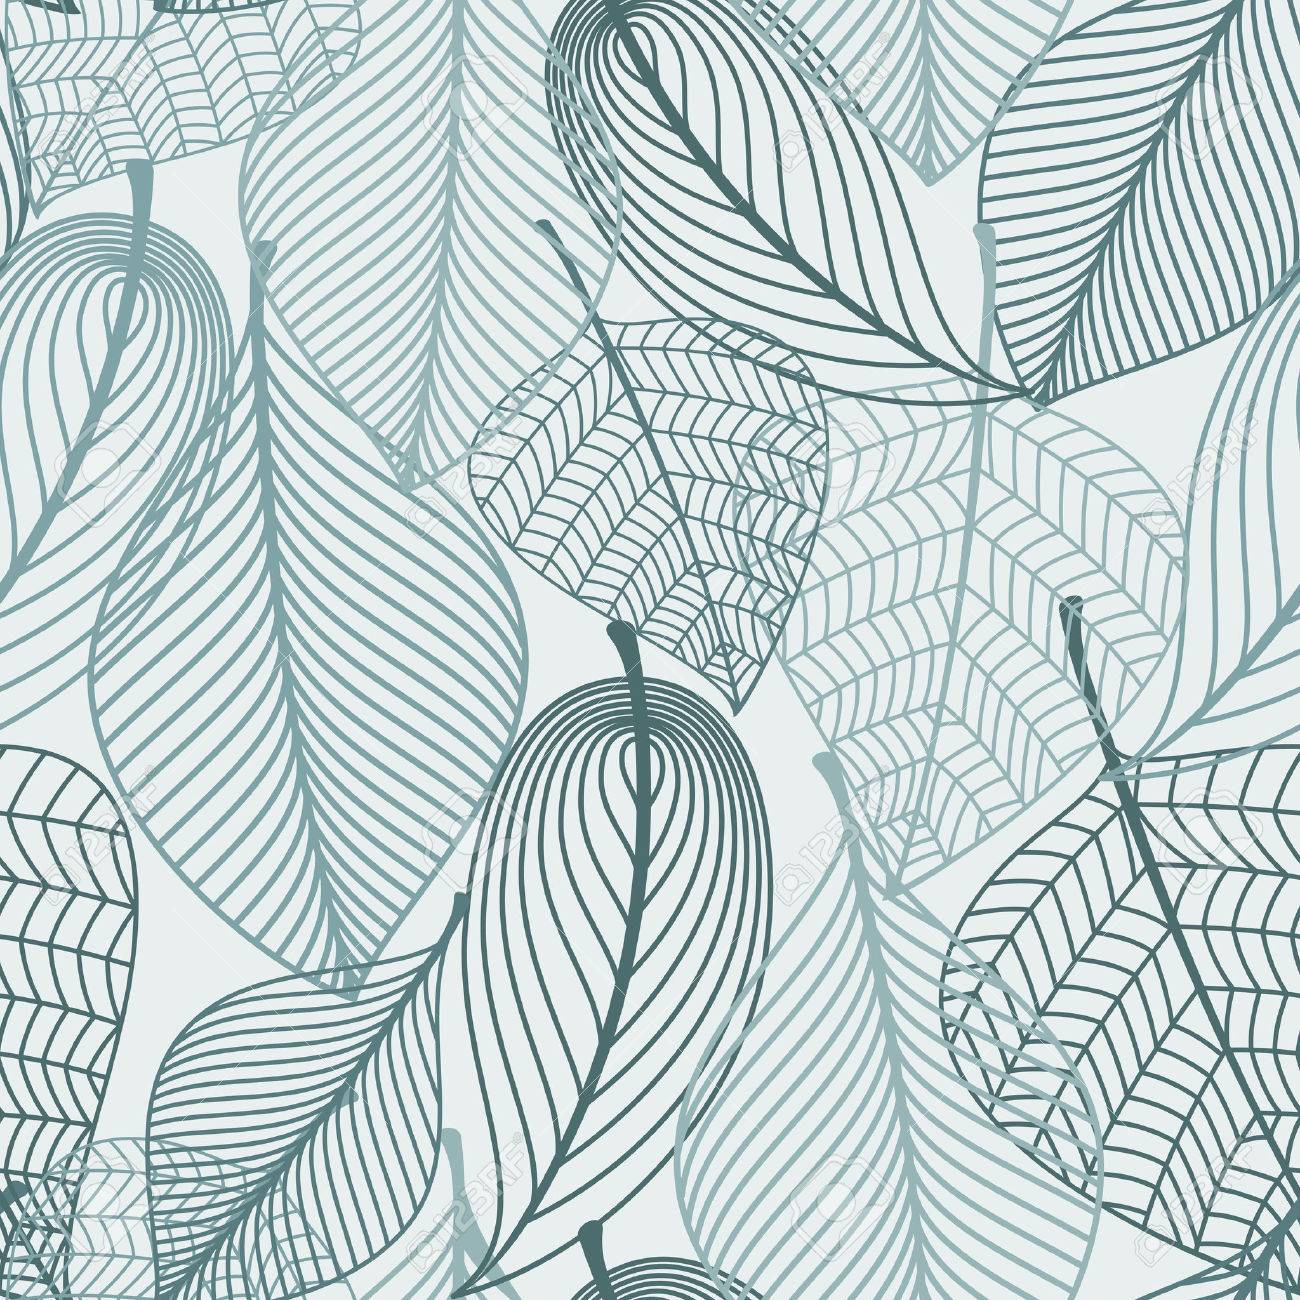 Delicate skeleton leaves background seamless pattern showing the vein detail in outline design in square format